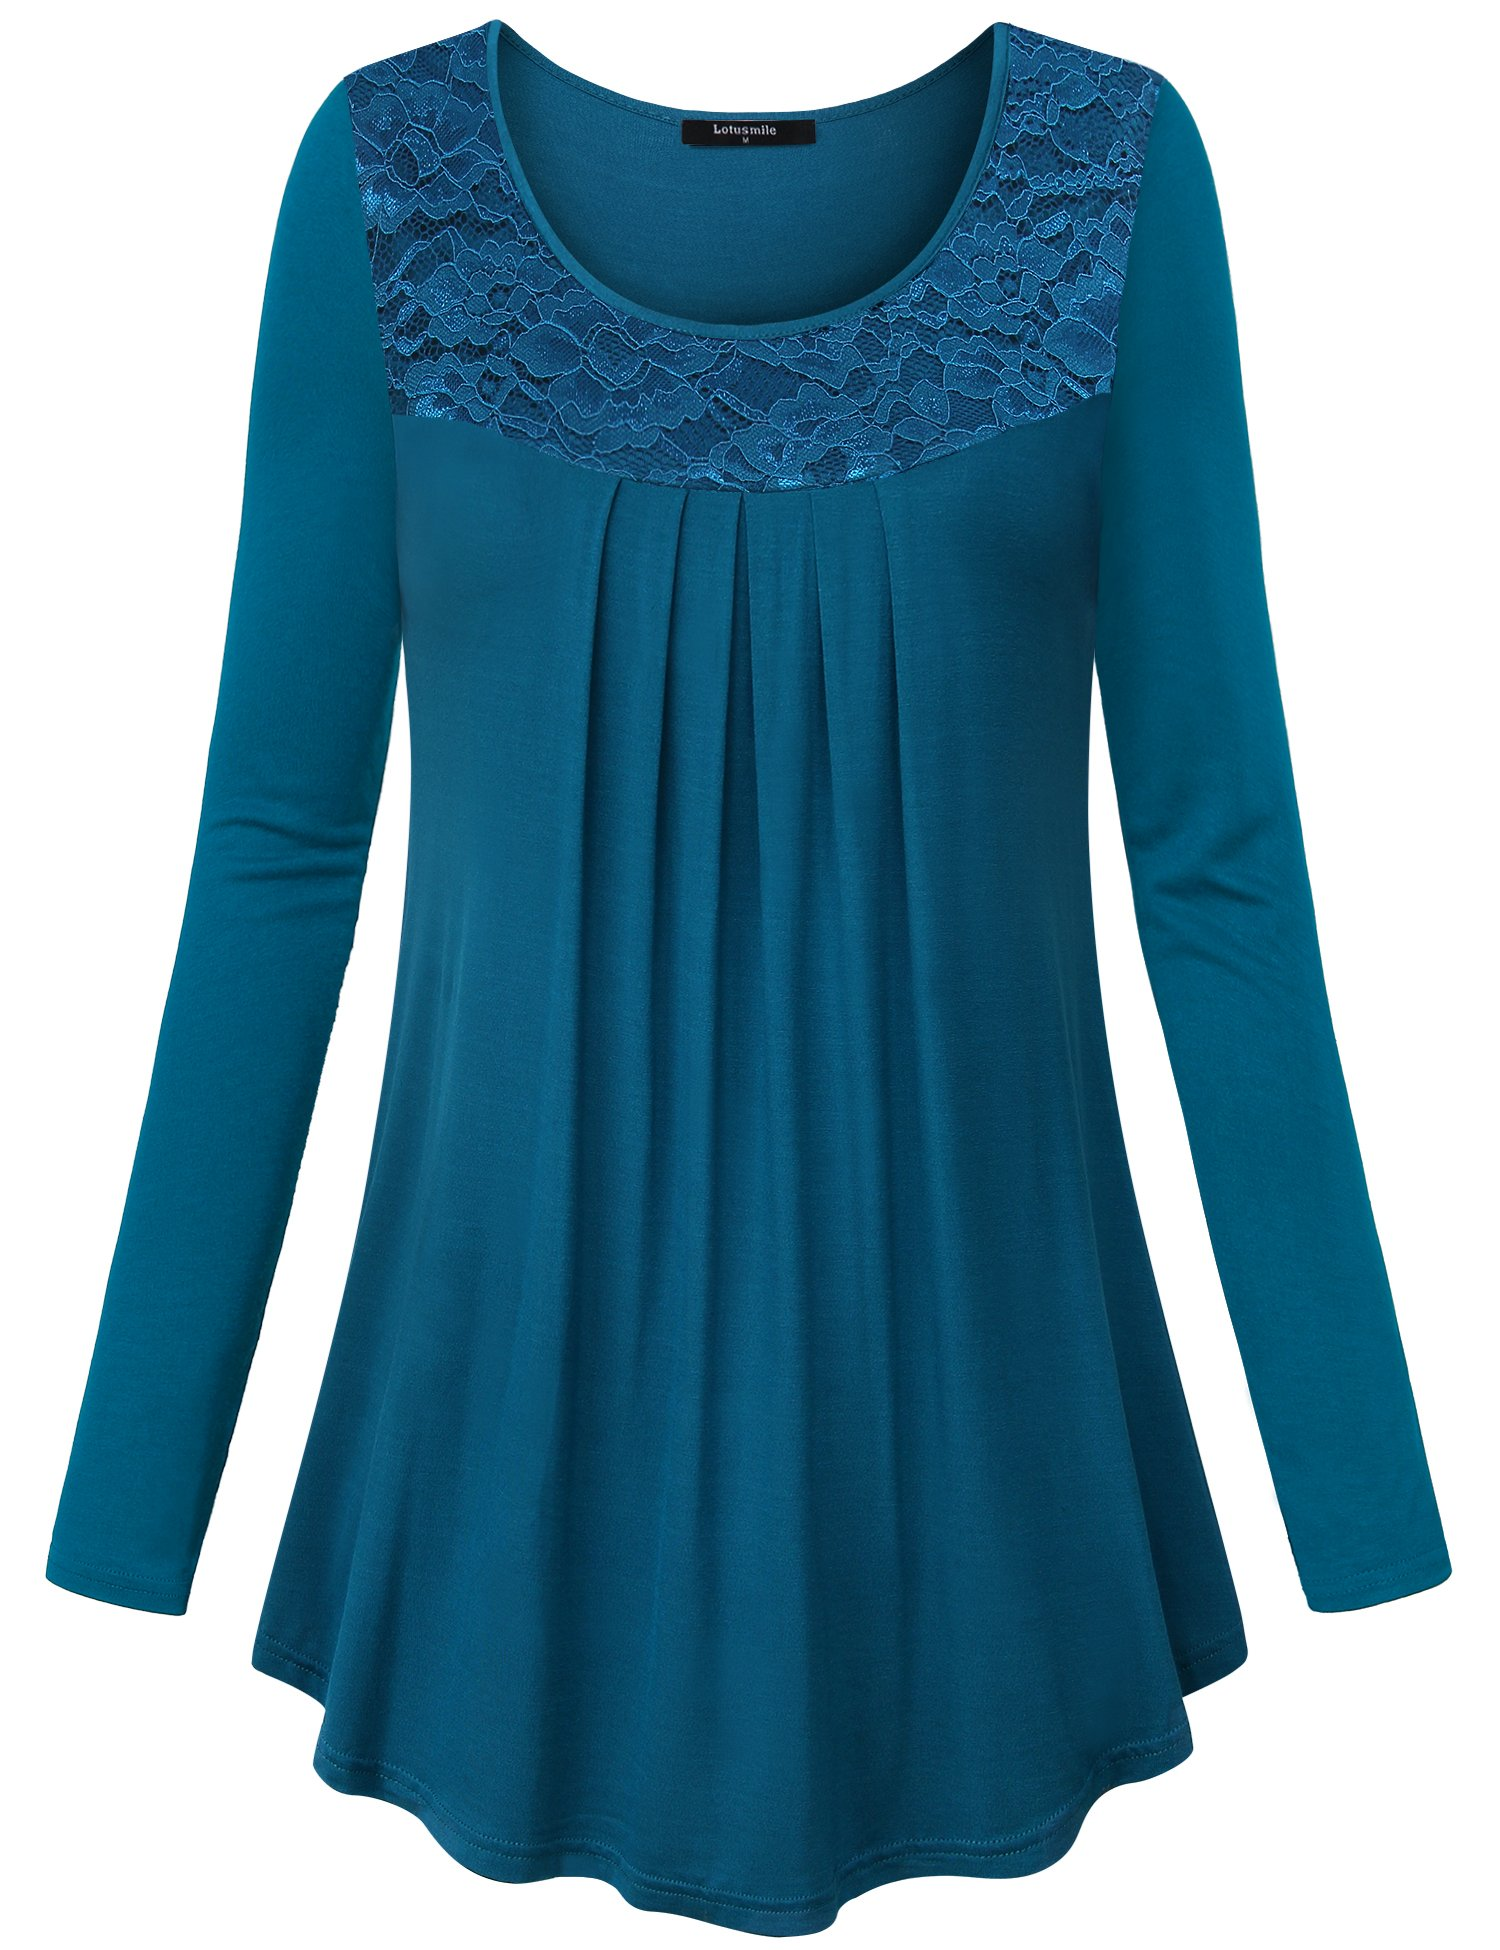 Lotusmile Tunic Tops for Leggings for Womens Long Sleeve Tunic Round Neck Lace Baggy Top Plain Shirts Knits Tee Pullover Autumn Blouses Dark Cyan XXL